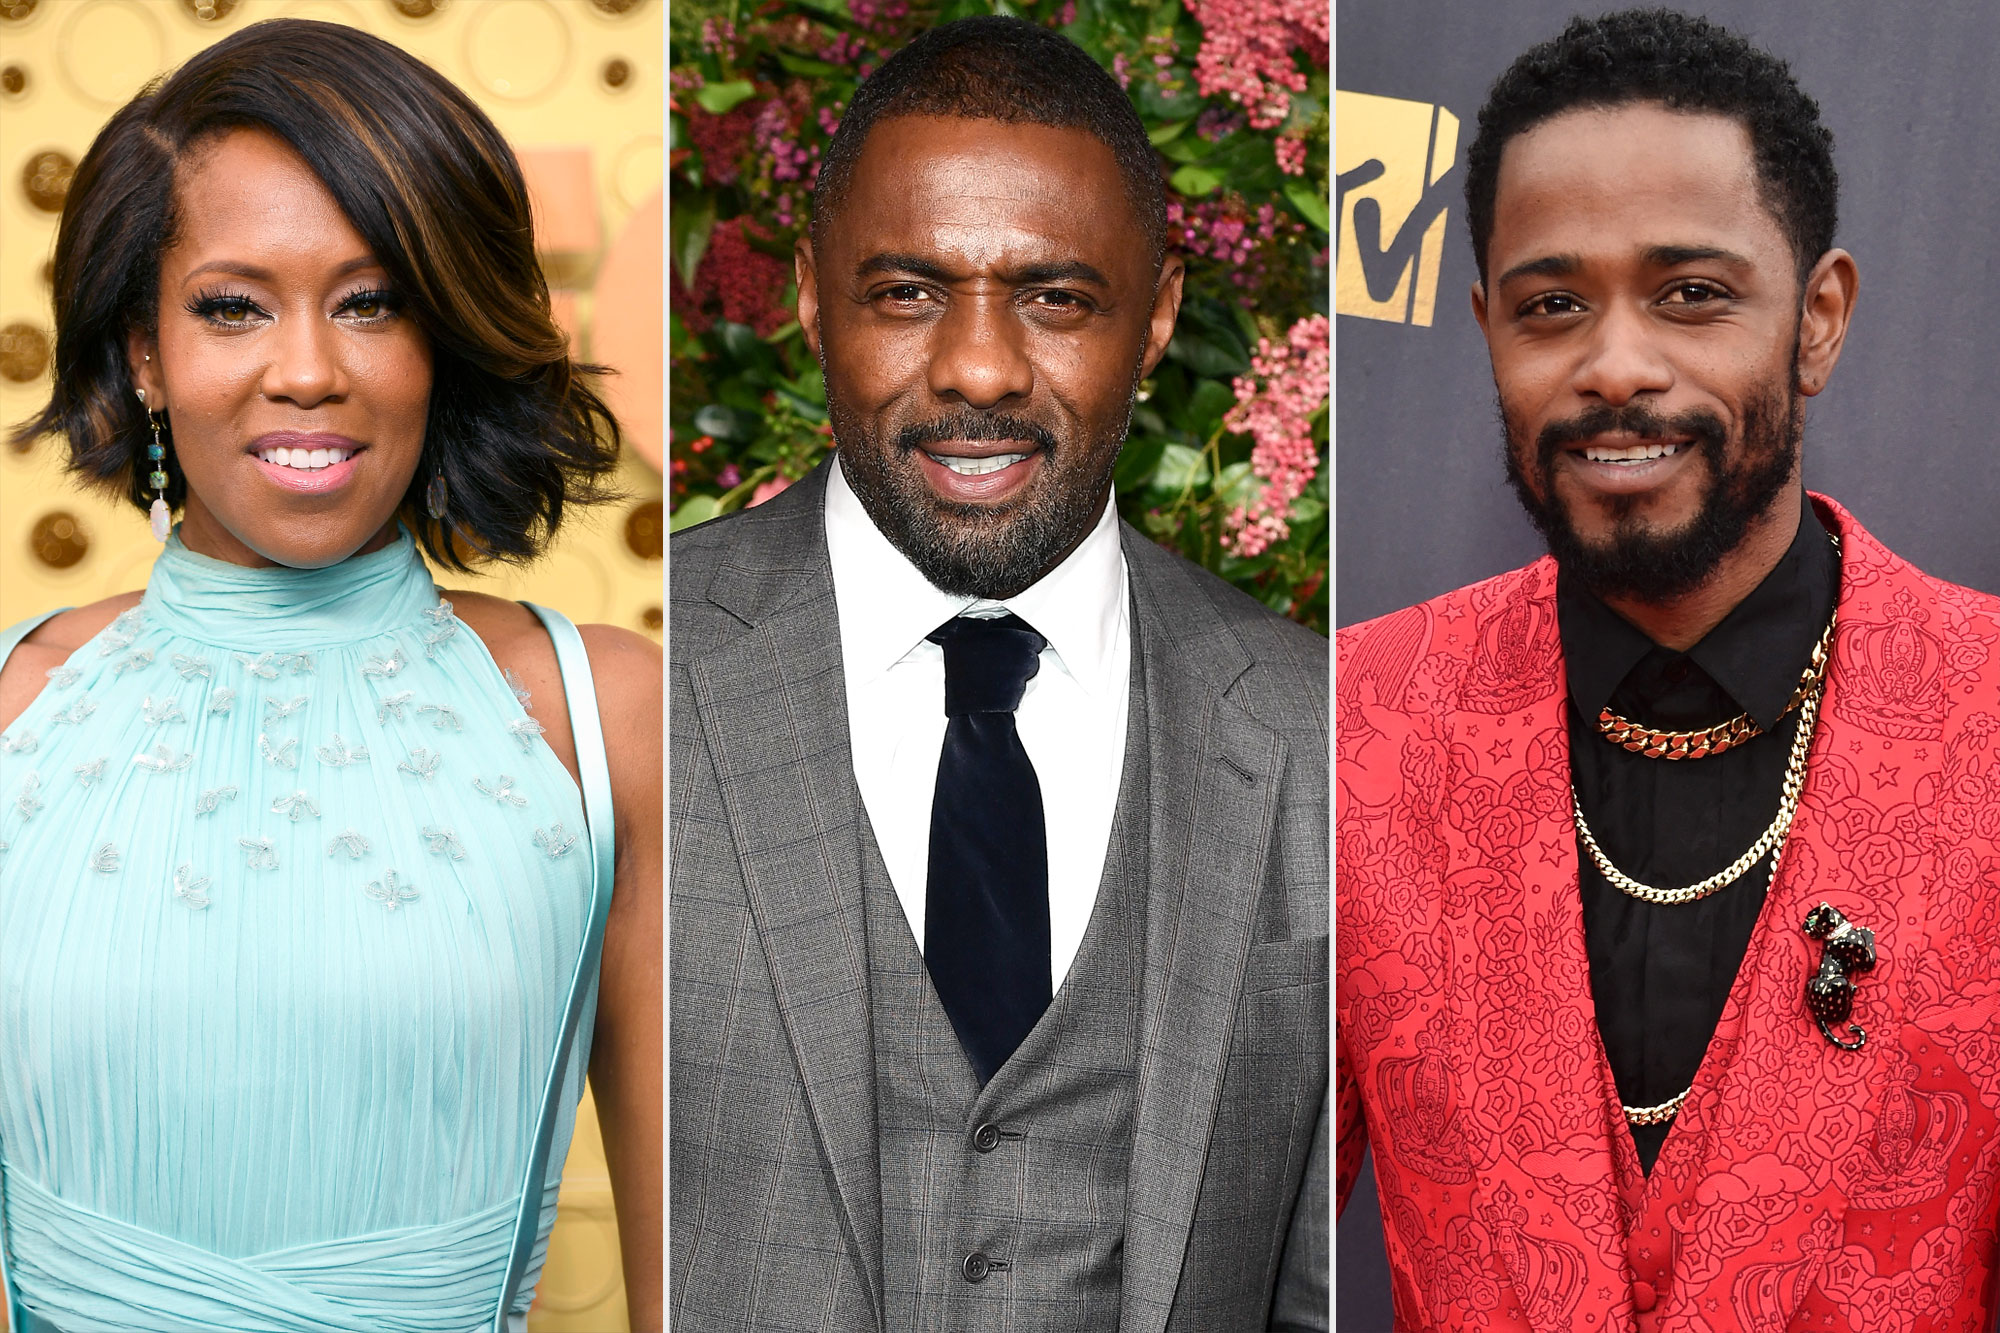 Regina King, Idris Elba, and Lakeith Stanfield